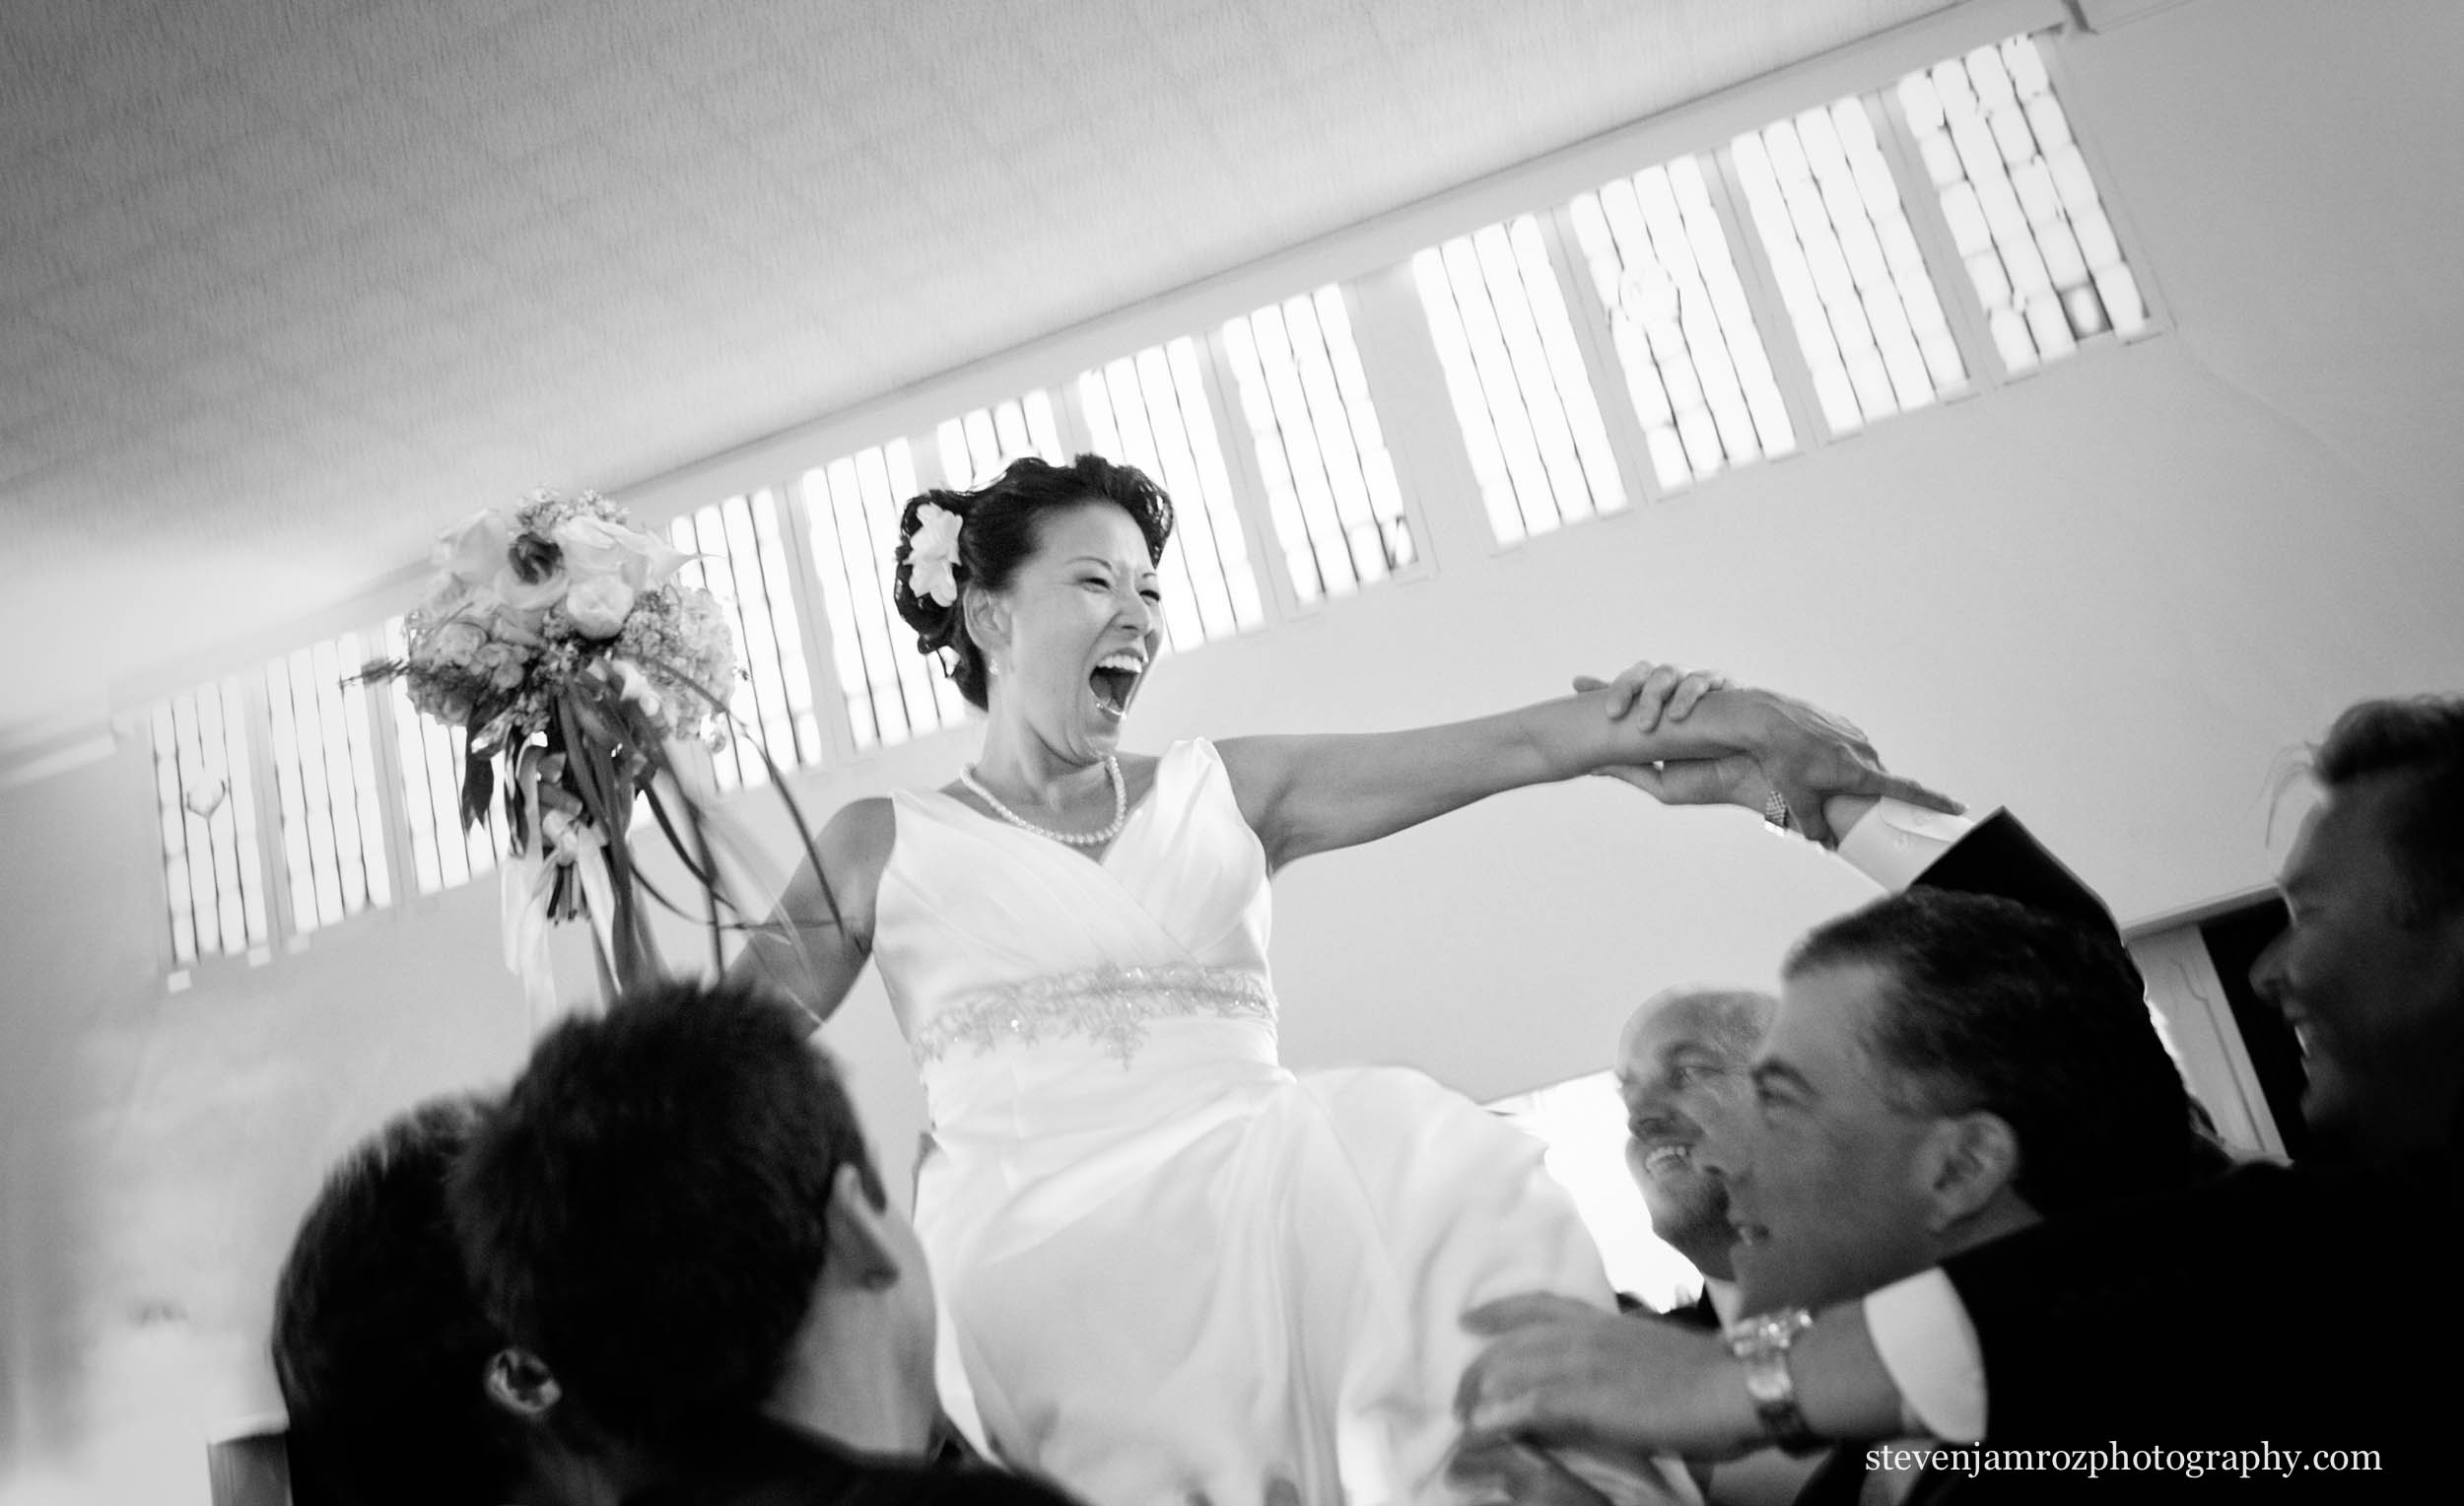 chair-dance-bride-wedding-steven-jamroz-photography-0477.jpg